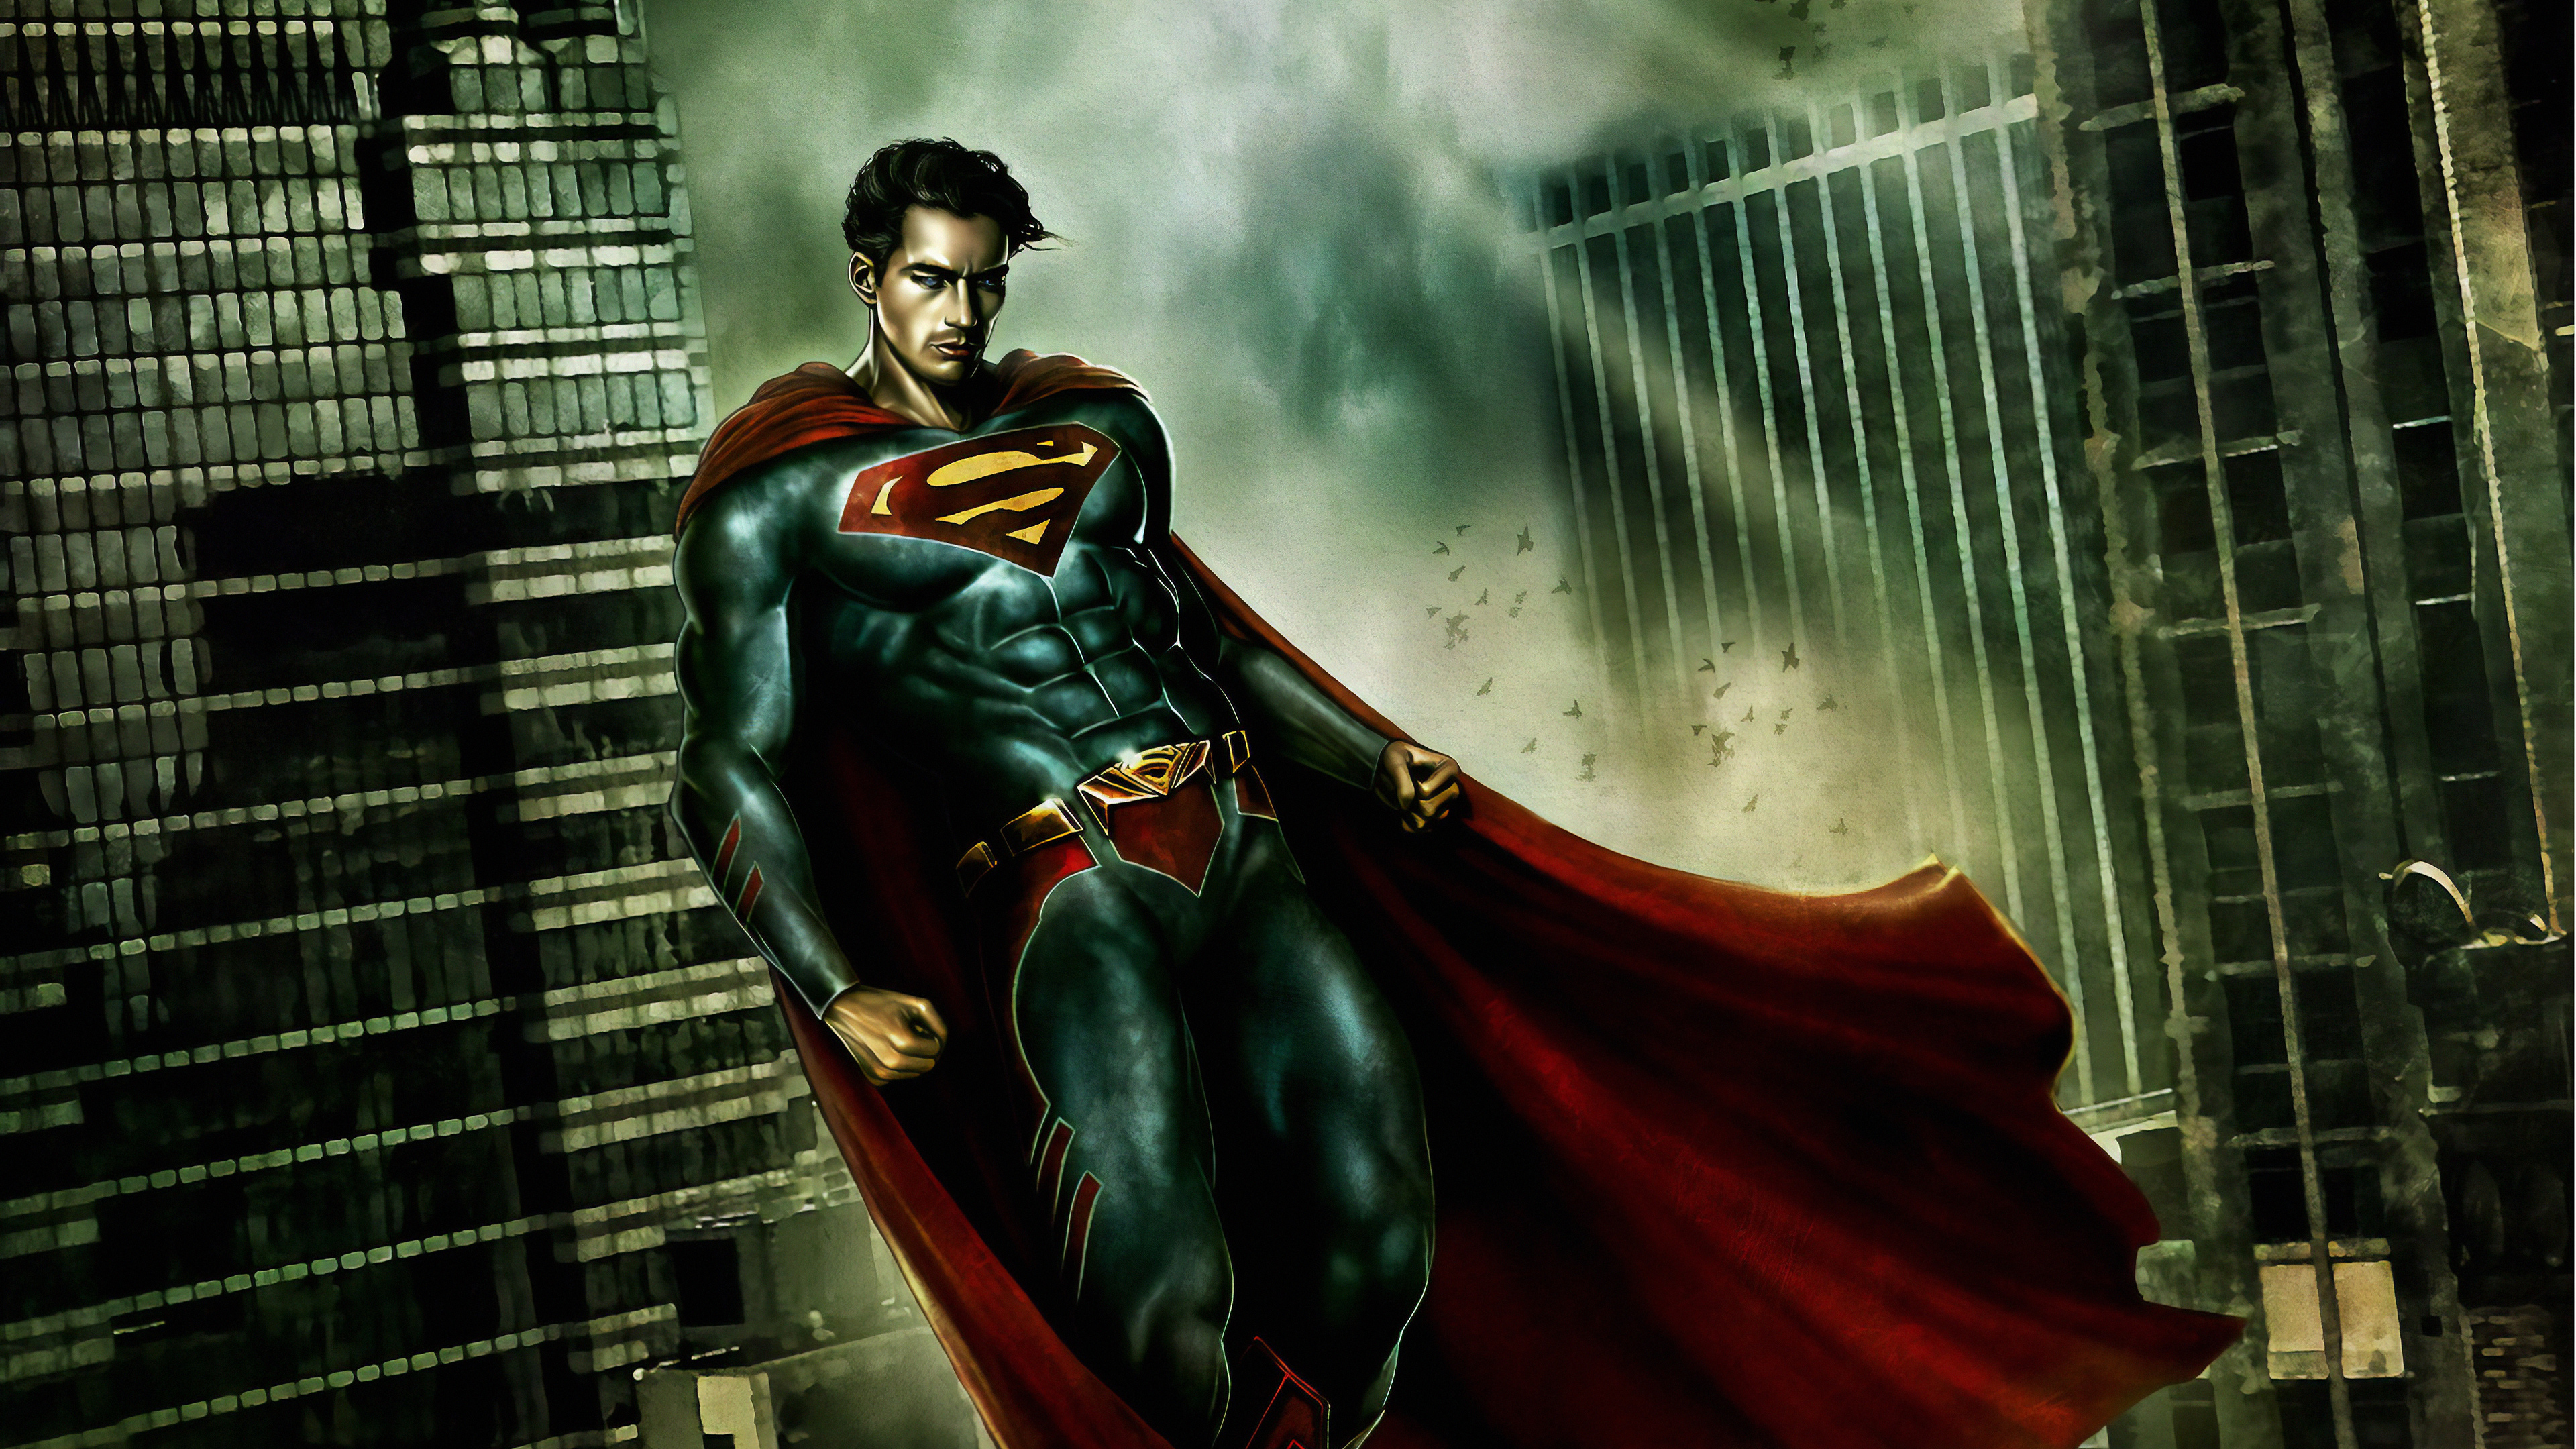 superman new 1565053429 - Superman New - superman wallpapers, superheroes wallpapers, hd-wallpapers, digital art wallpapers, deviantart wallpapers, artwork wallpapers, 4k-wallpapers